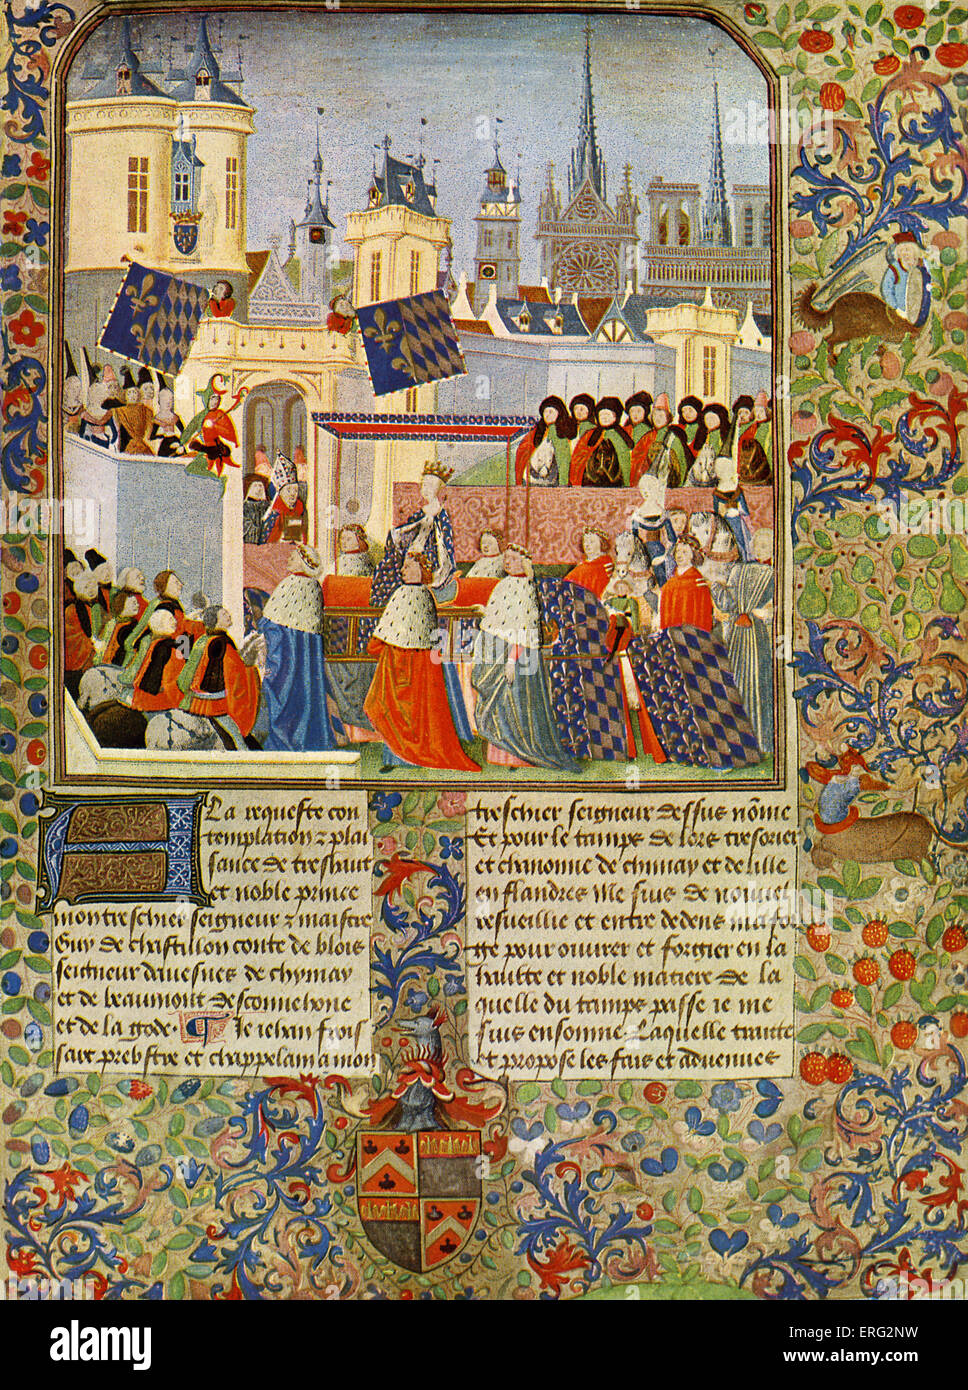 The entry of Queen Isabel into Paris in 1389, from Froissart's Chronicles  by Jean Froissart. JF: chronicler of medieval France,